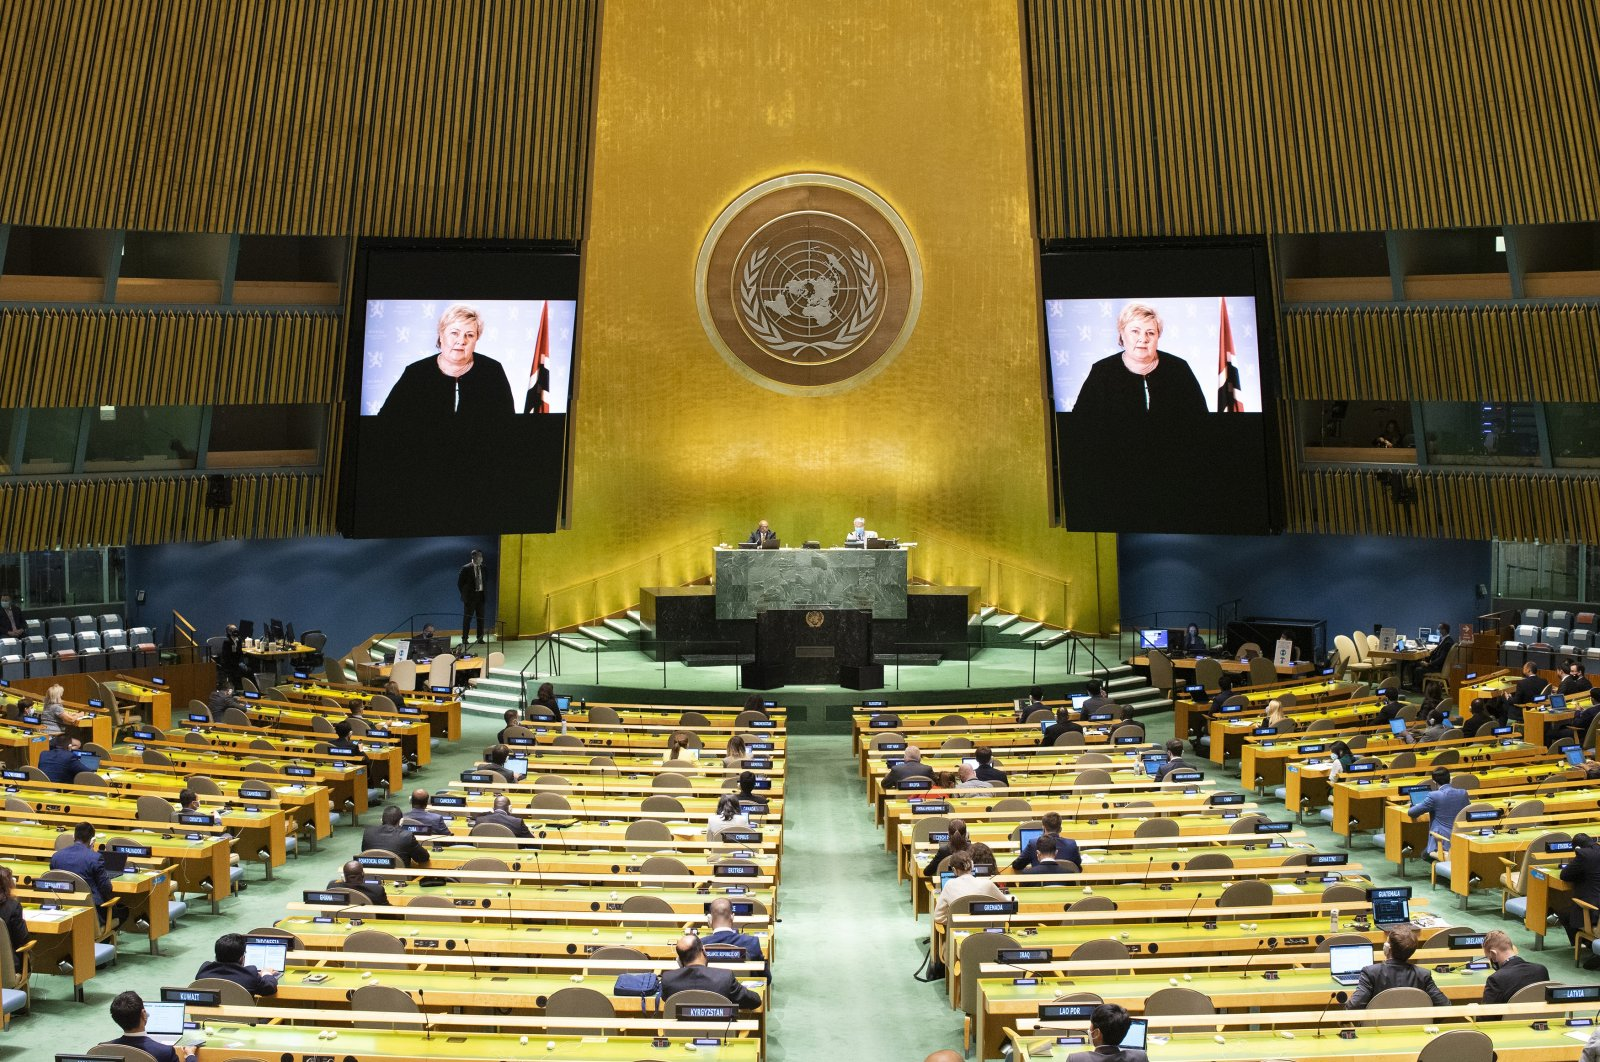 Norway's Prime Minister Erna Solberg remotely addresses the 76th Session of the United Nations General Assembly in a pre-recorded message at U.N. headquarters, Sept. 22, 2021. (AP Photo)